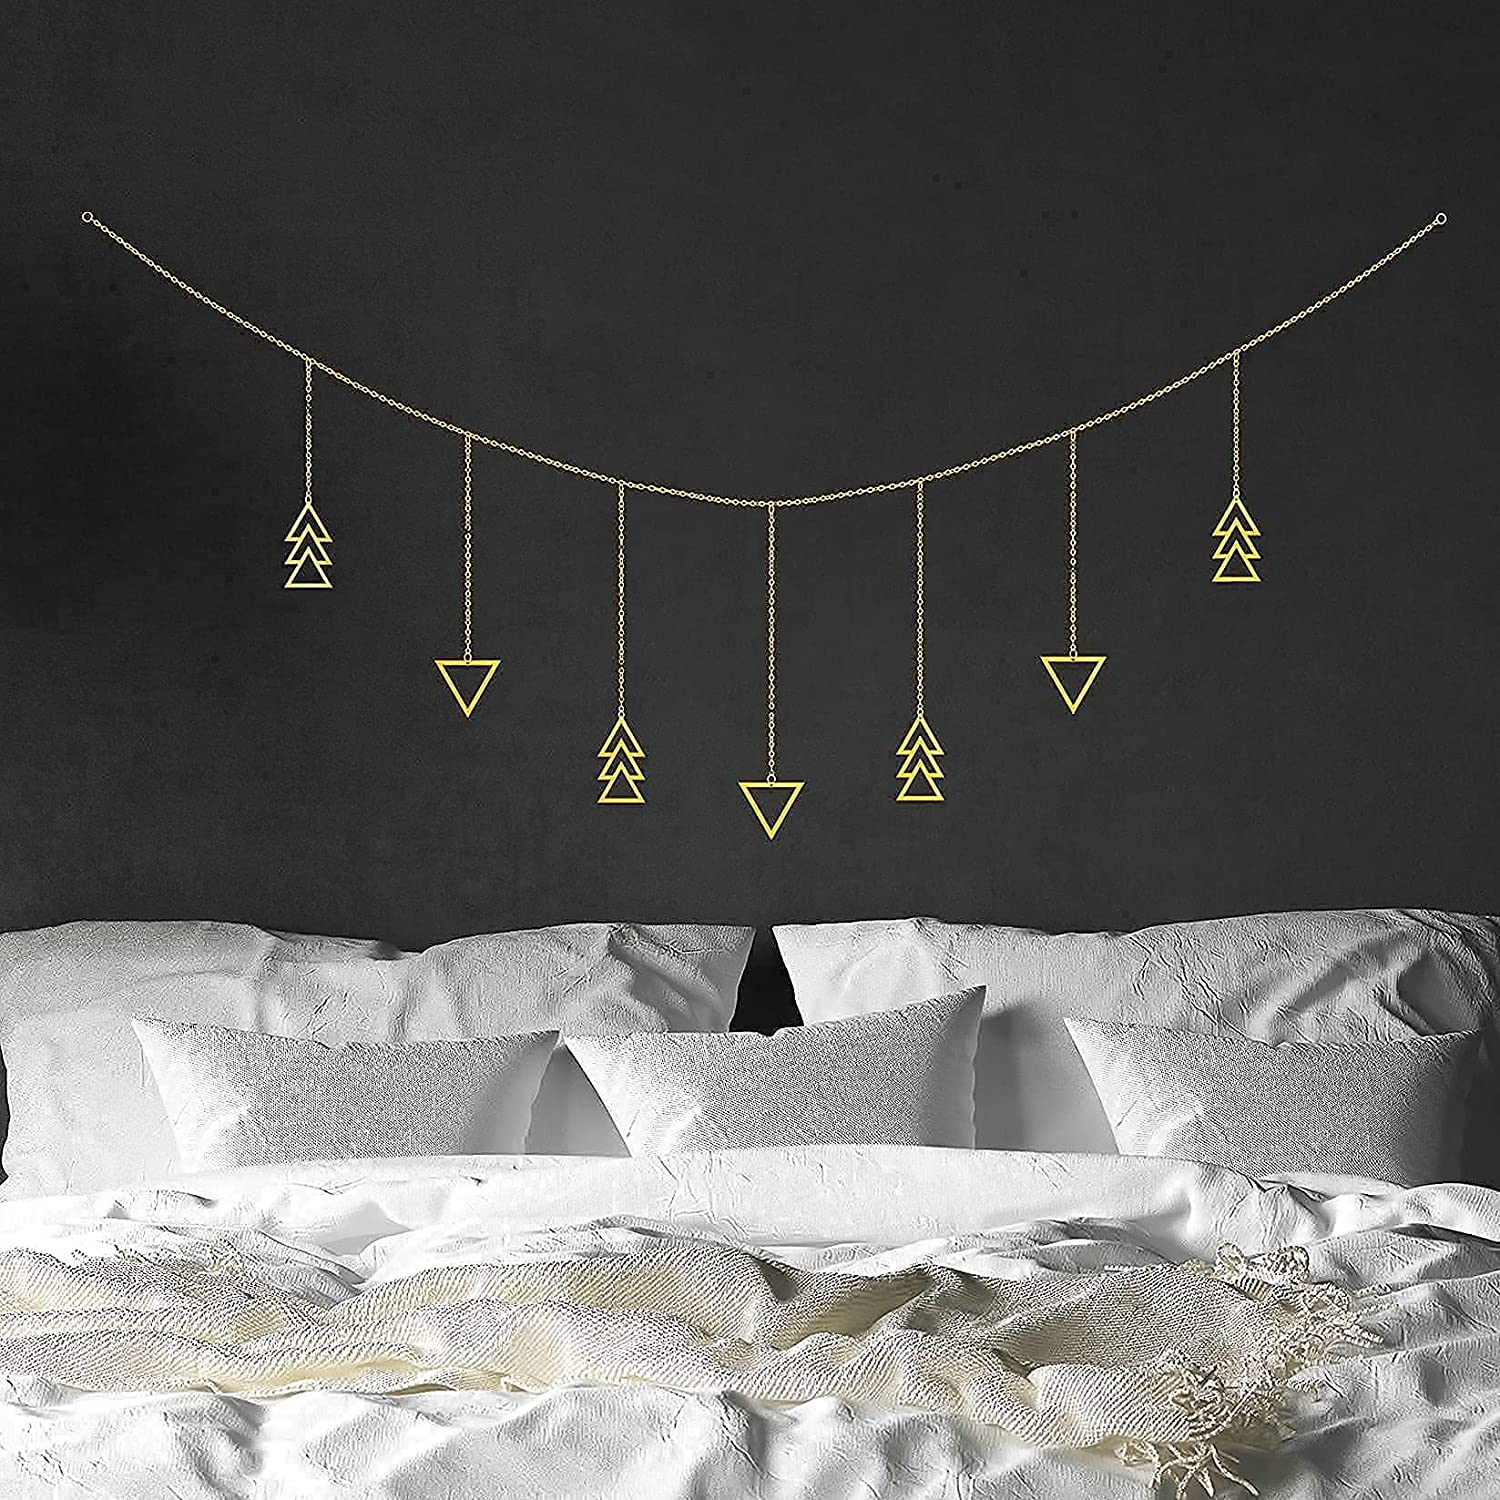 Boho Wall Hanging Decor | Modern Geometric Gold Metal Wall Art Decor | Boho Garland | Cute Bohemian Style Southwest Room Decor Aesthetic Wall Decor For Bedroom | Living Room | Apartment | Girls Room Decorations for Home